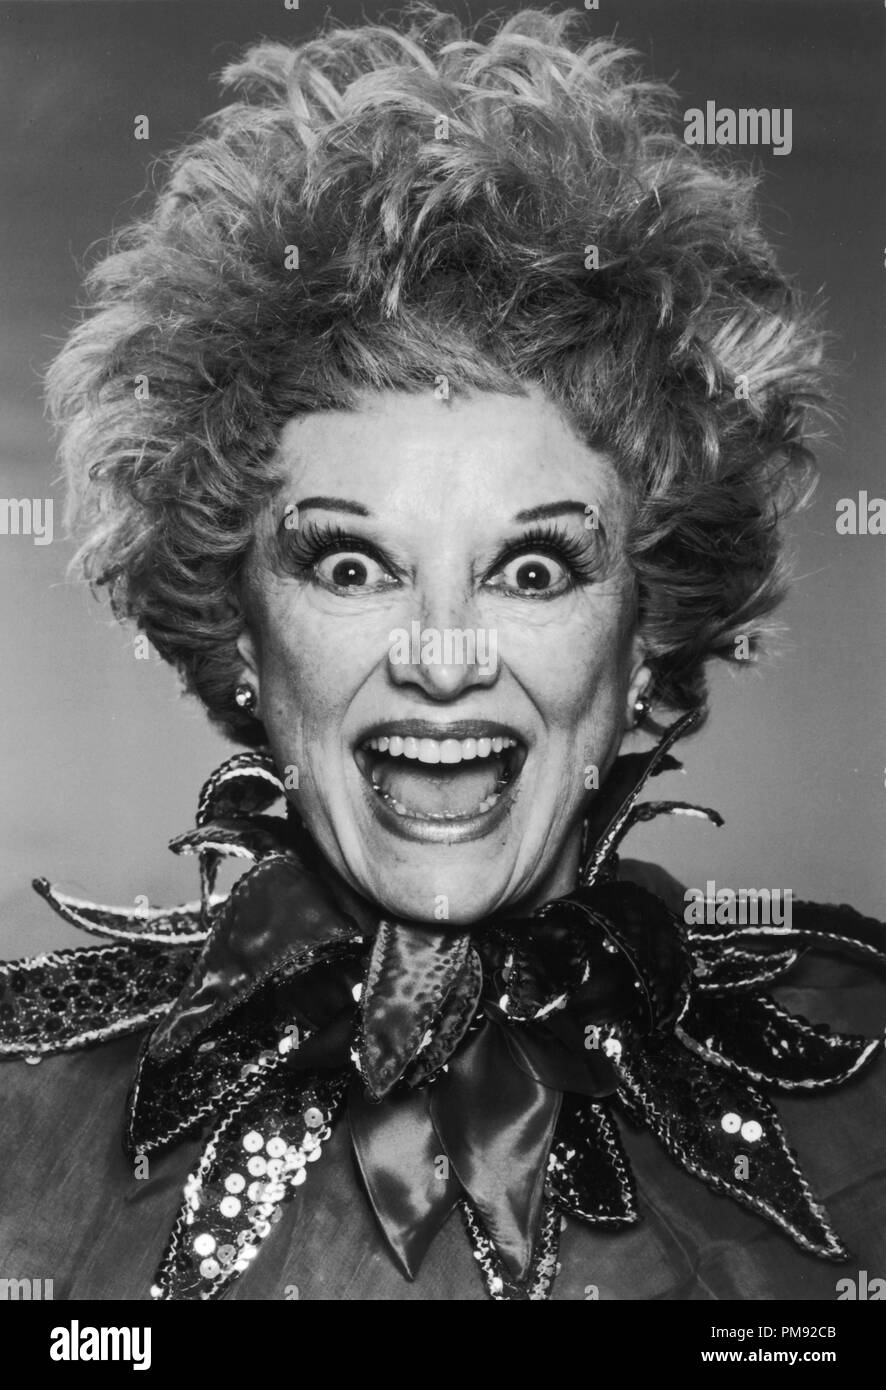 Phyllis Diller nudes (92 pictures), leaked Bikini, Twitter, cameltoe 2020